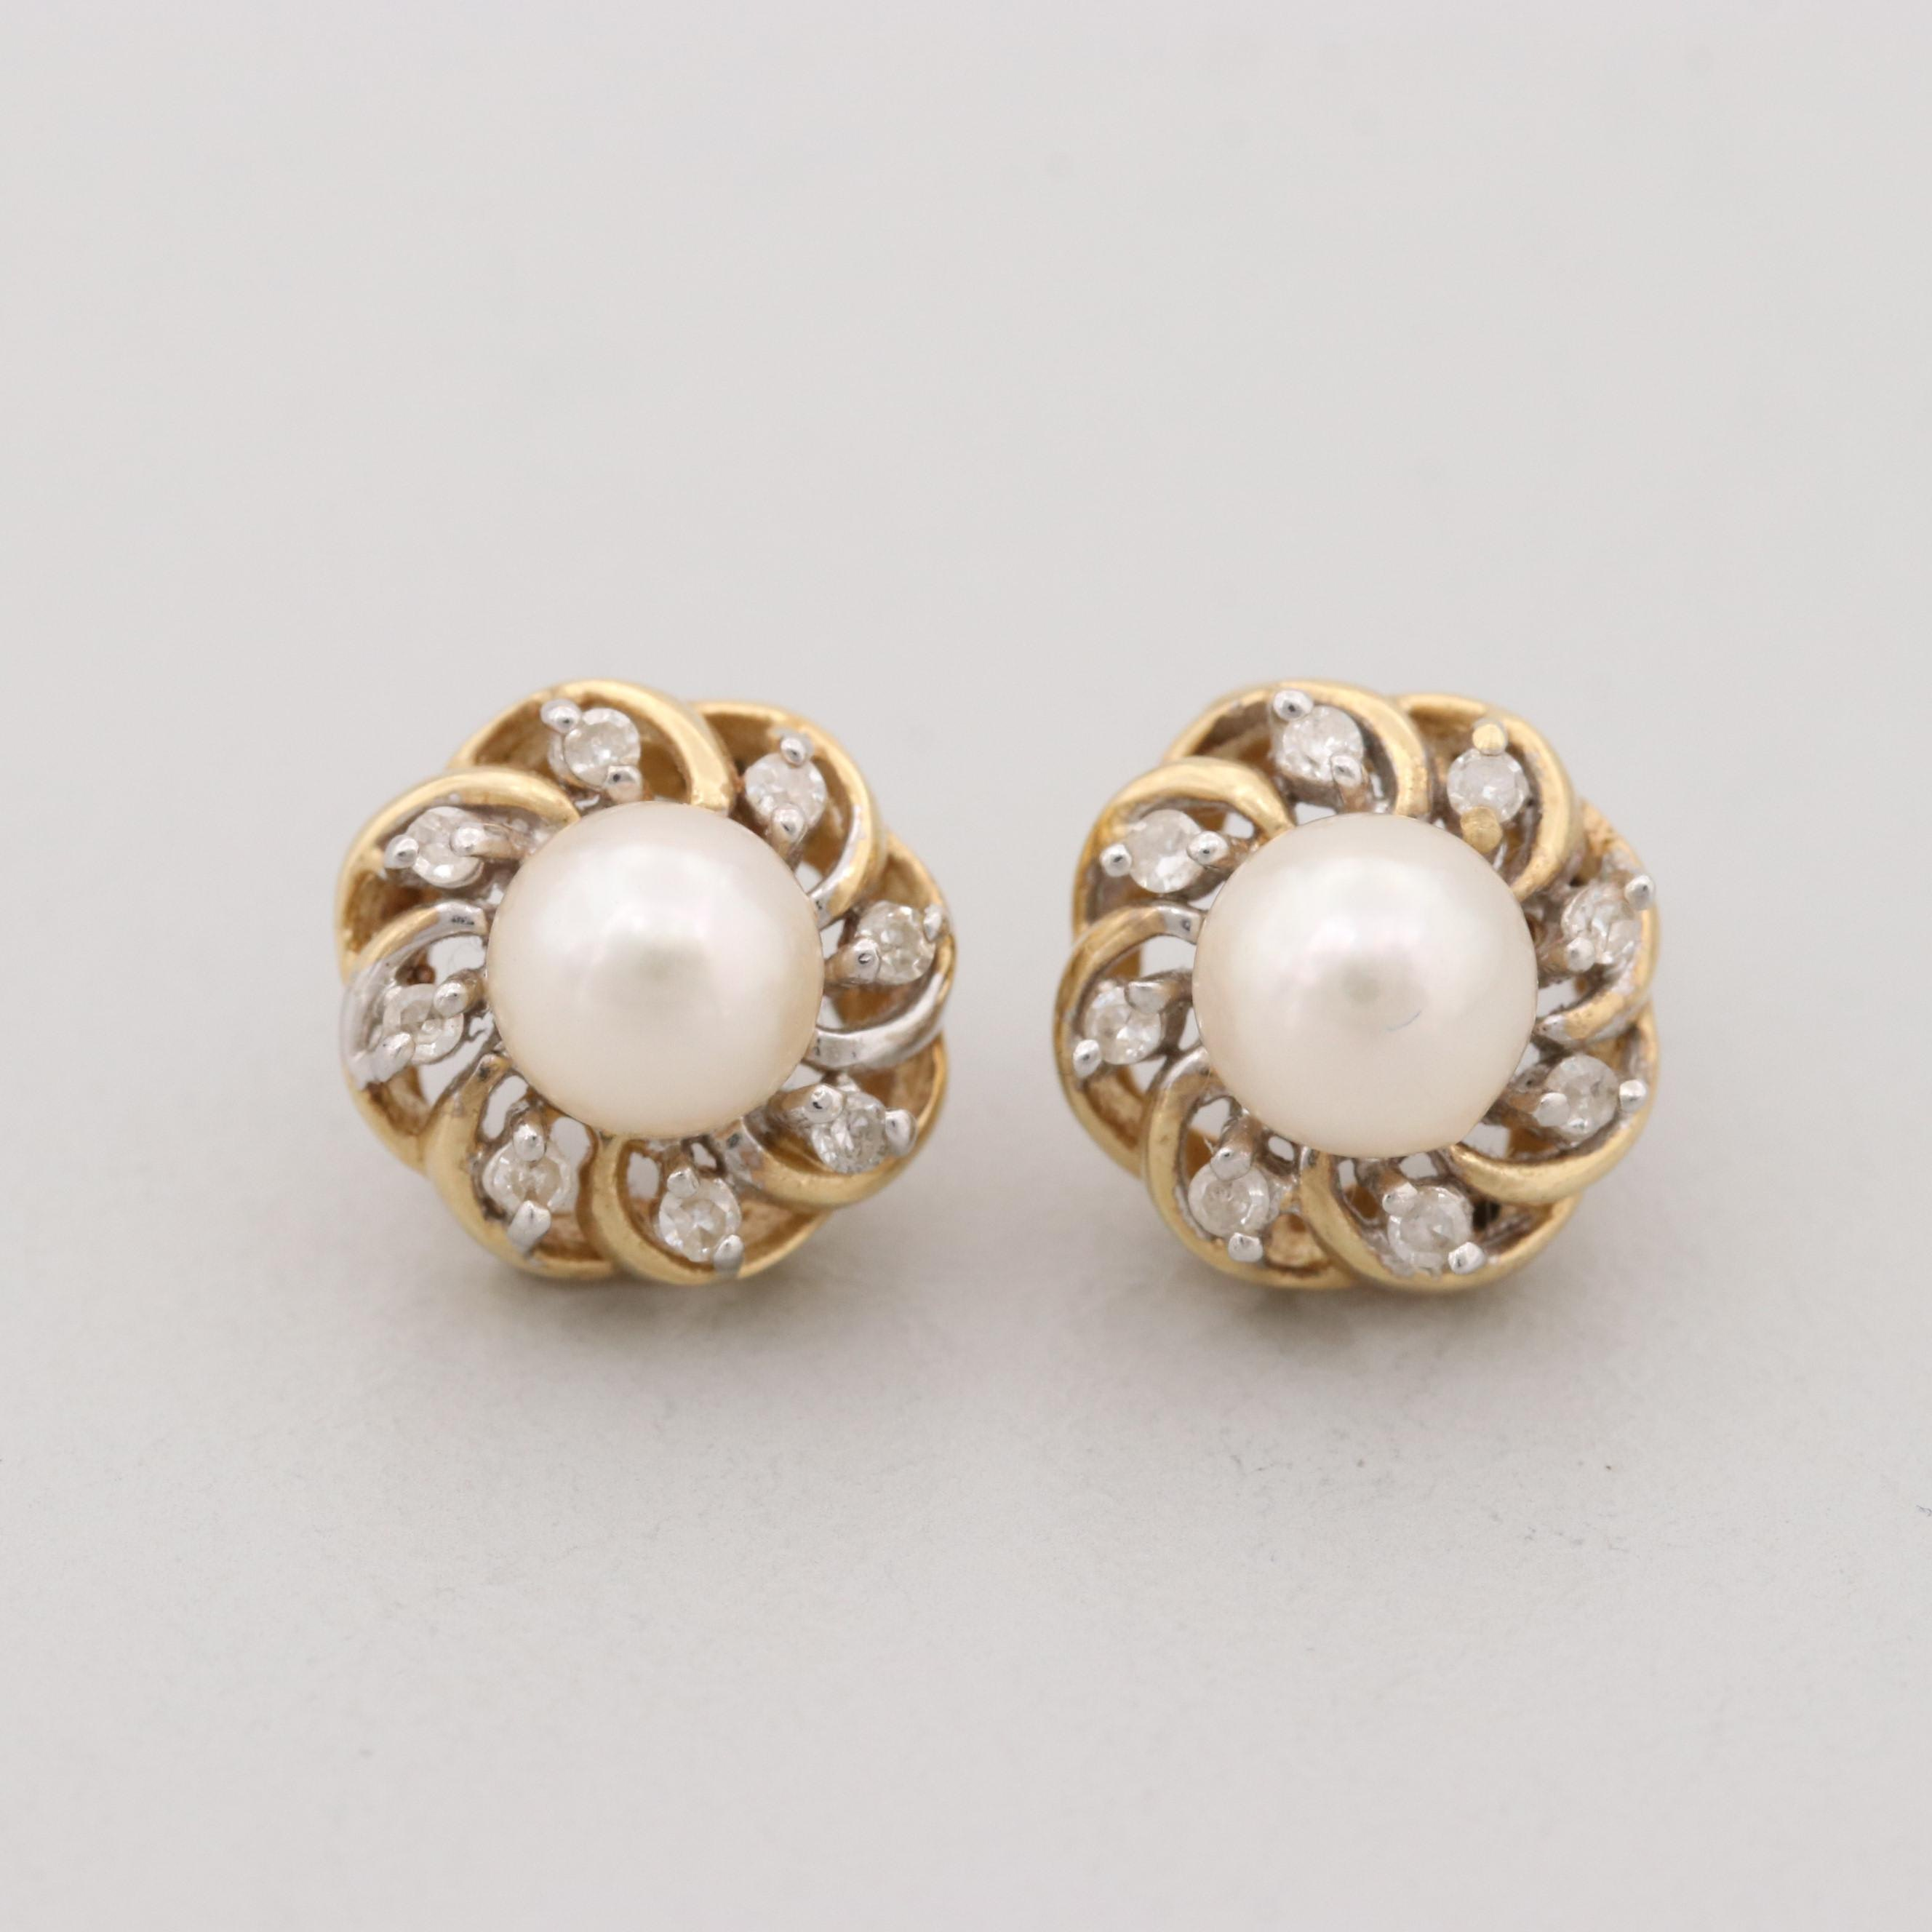 14K Yellow Gold Cultured Pearl and Diamond Stud Earrings